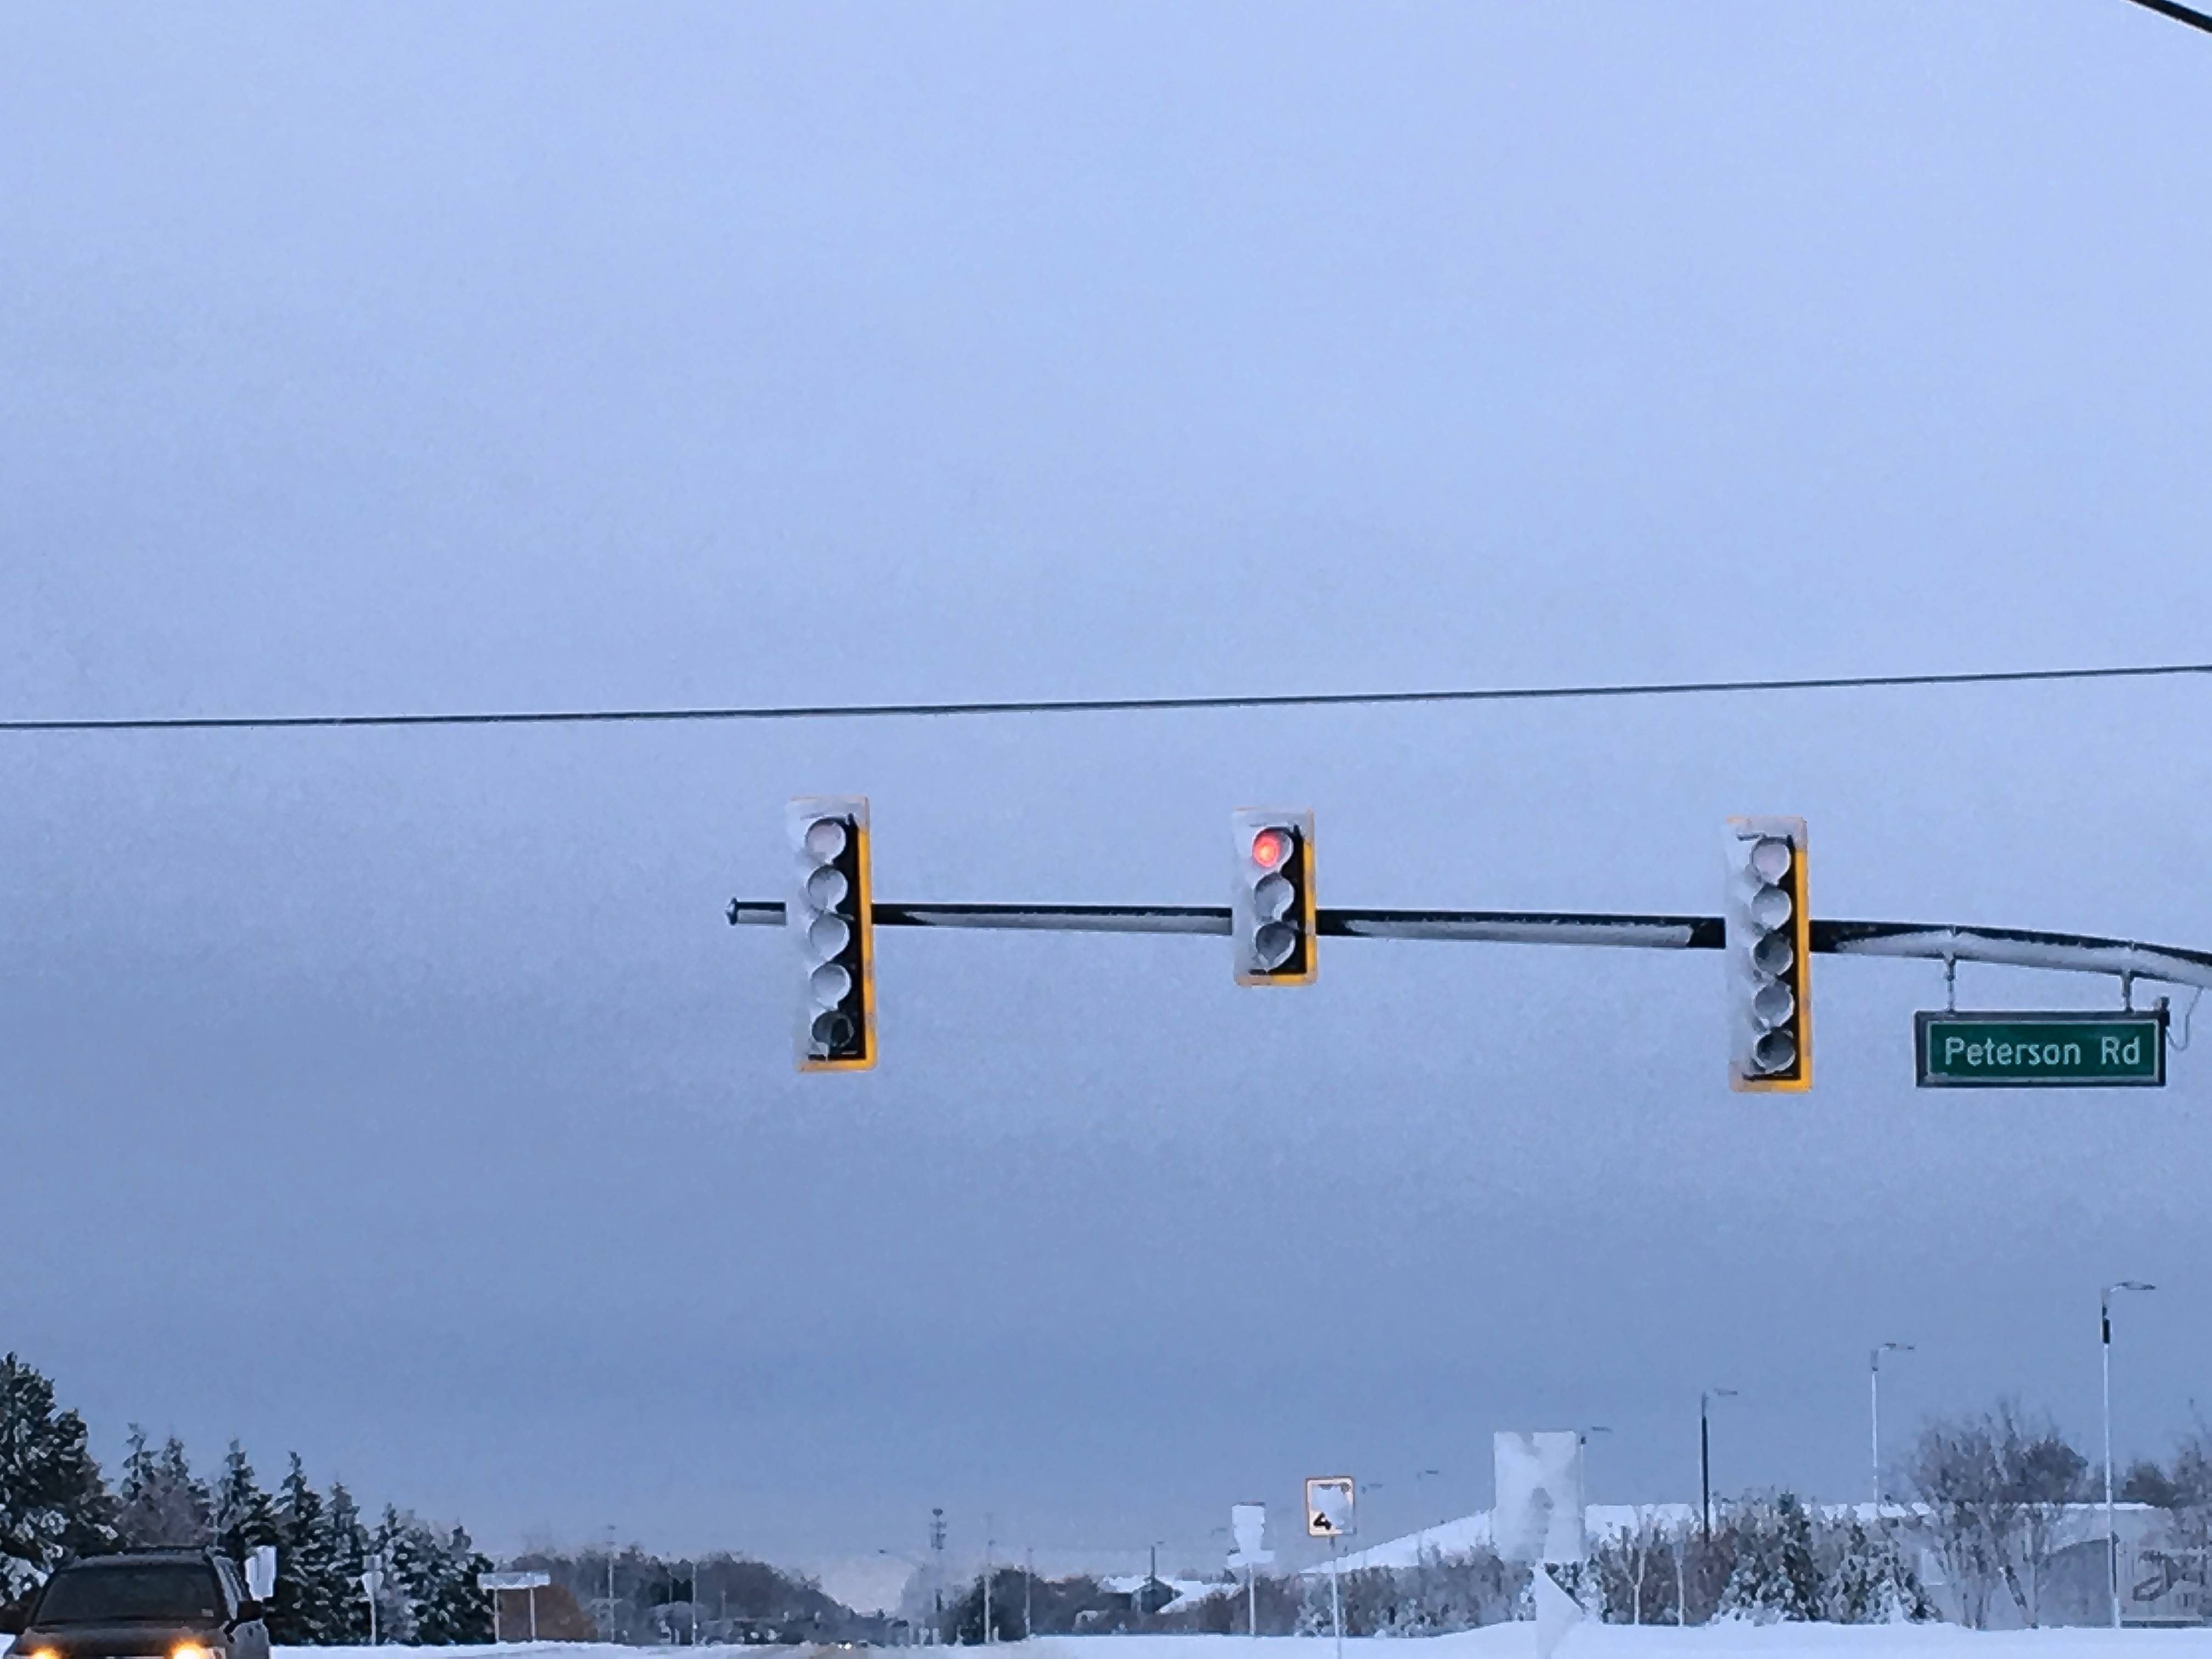 A heater installed in an LED traffic signal at Peterson and Midlothian roads near Libertyville had enough power to melt some snow covering the bulb, but not all.